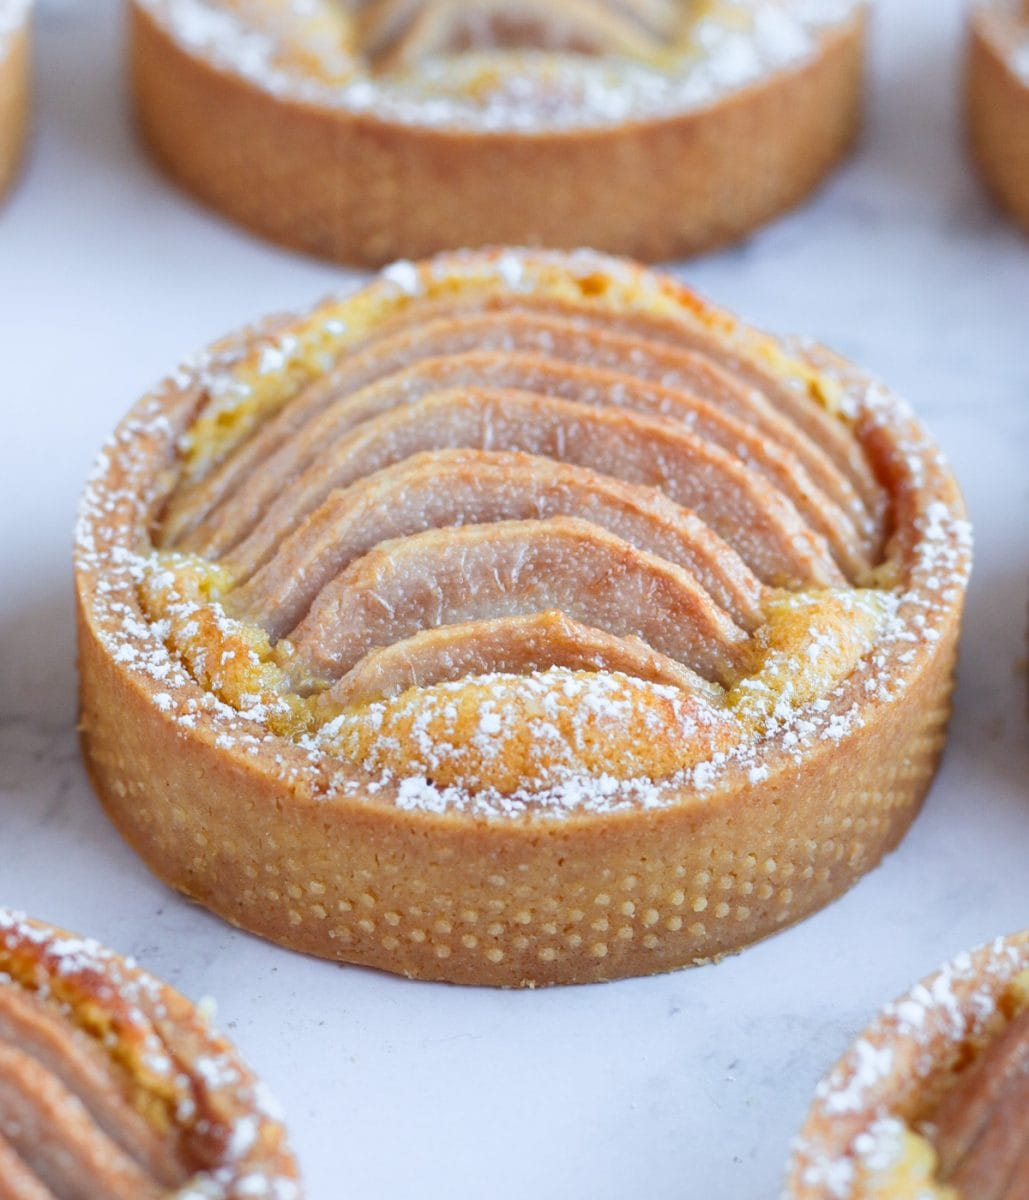 One pear tartlet on a grey surface surrounded by more tarts.